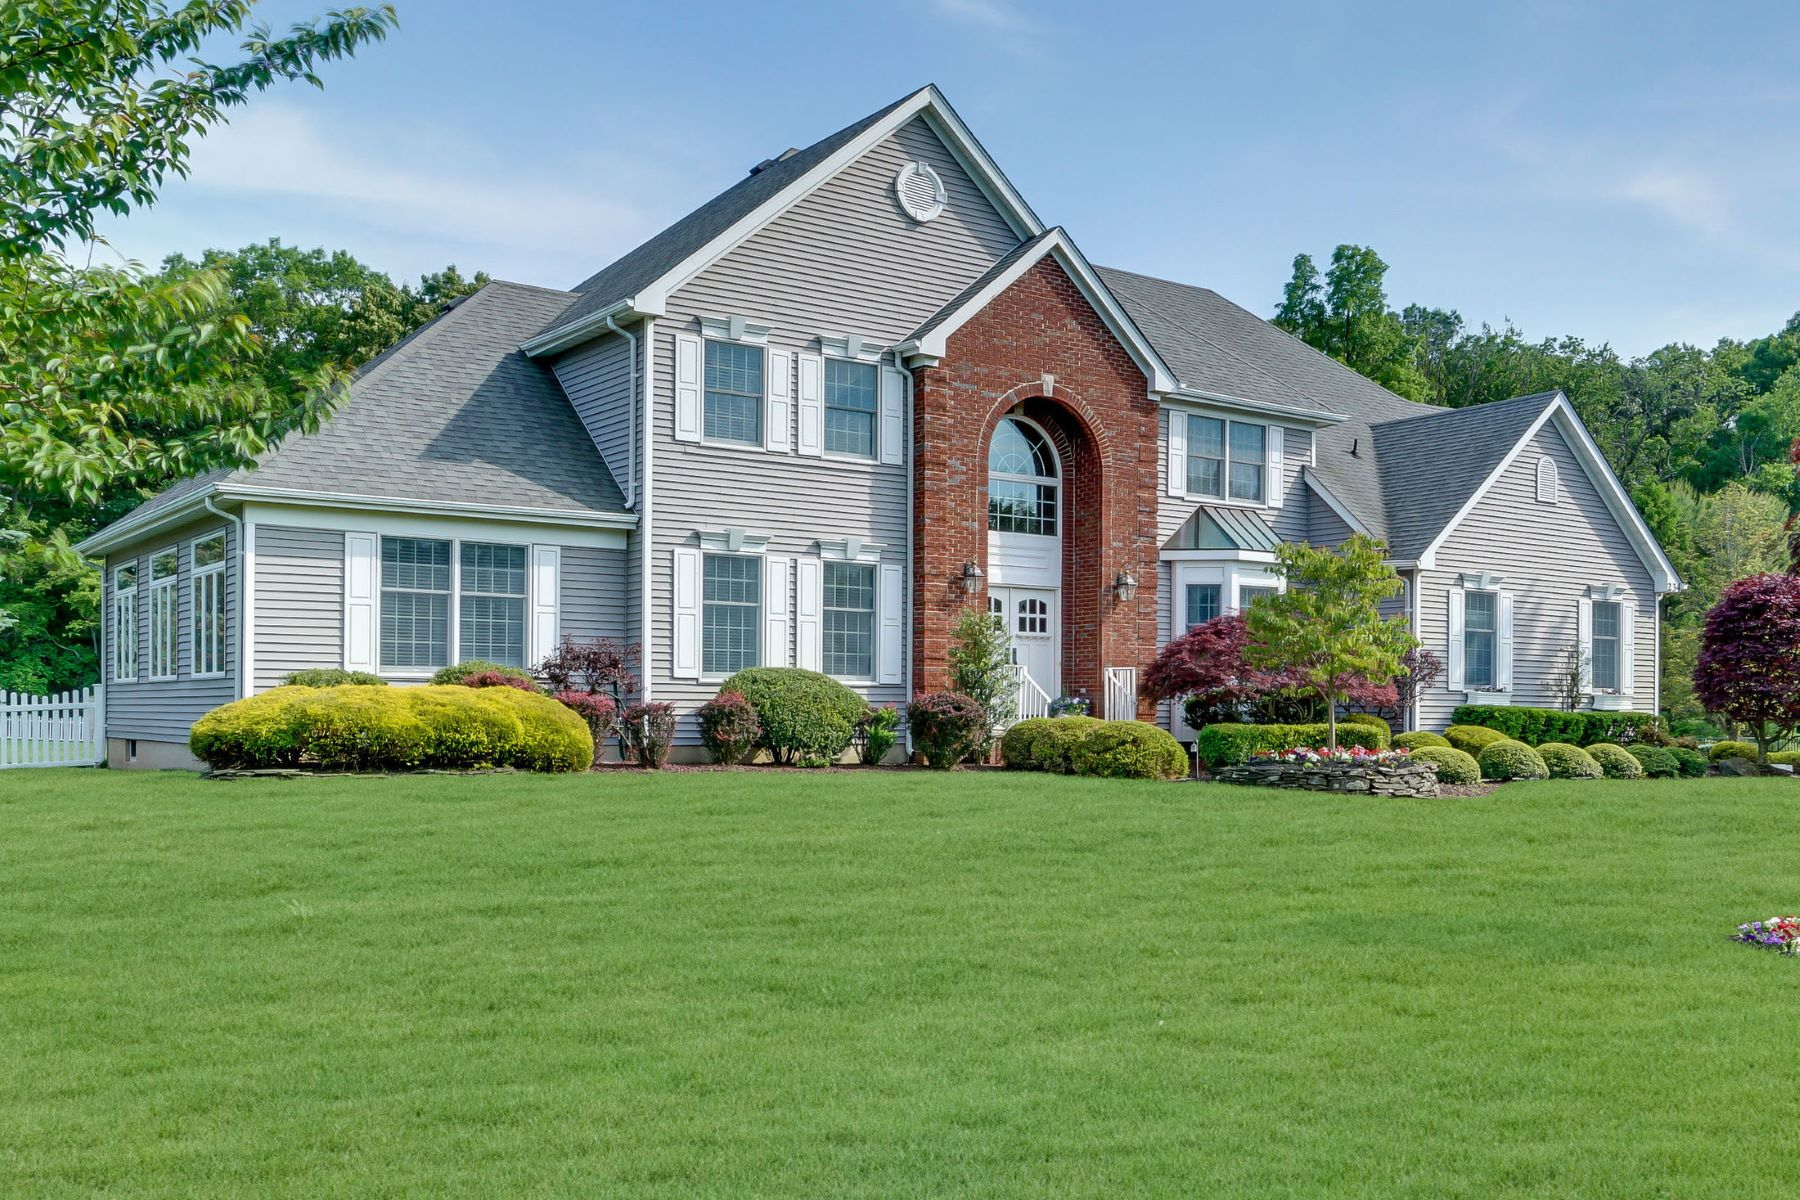 Single Family Homes for Sale at Seven Oaks 234 Pin Oak Road, Freehold, New Jersey 07728 United States